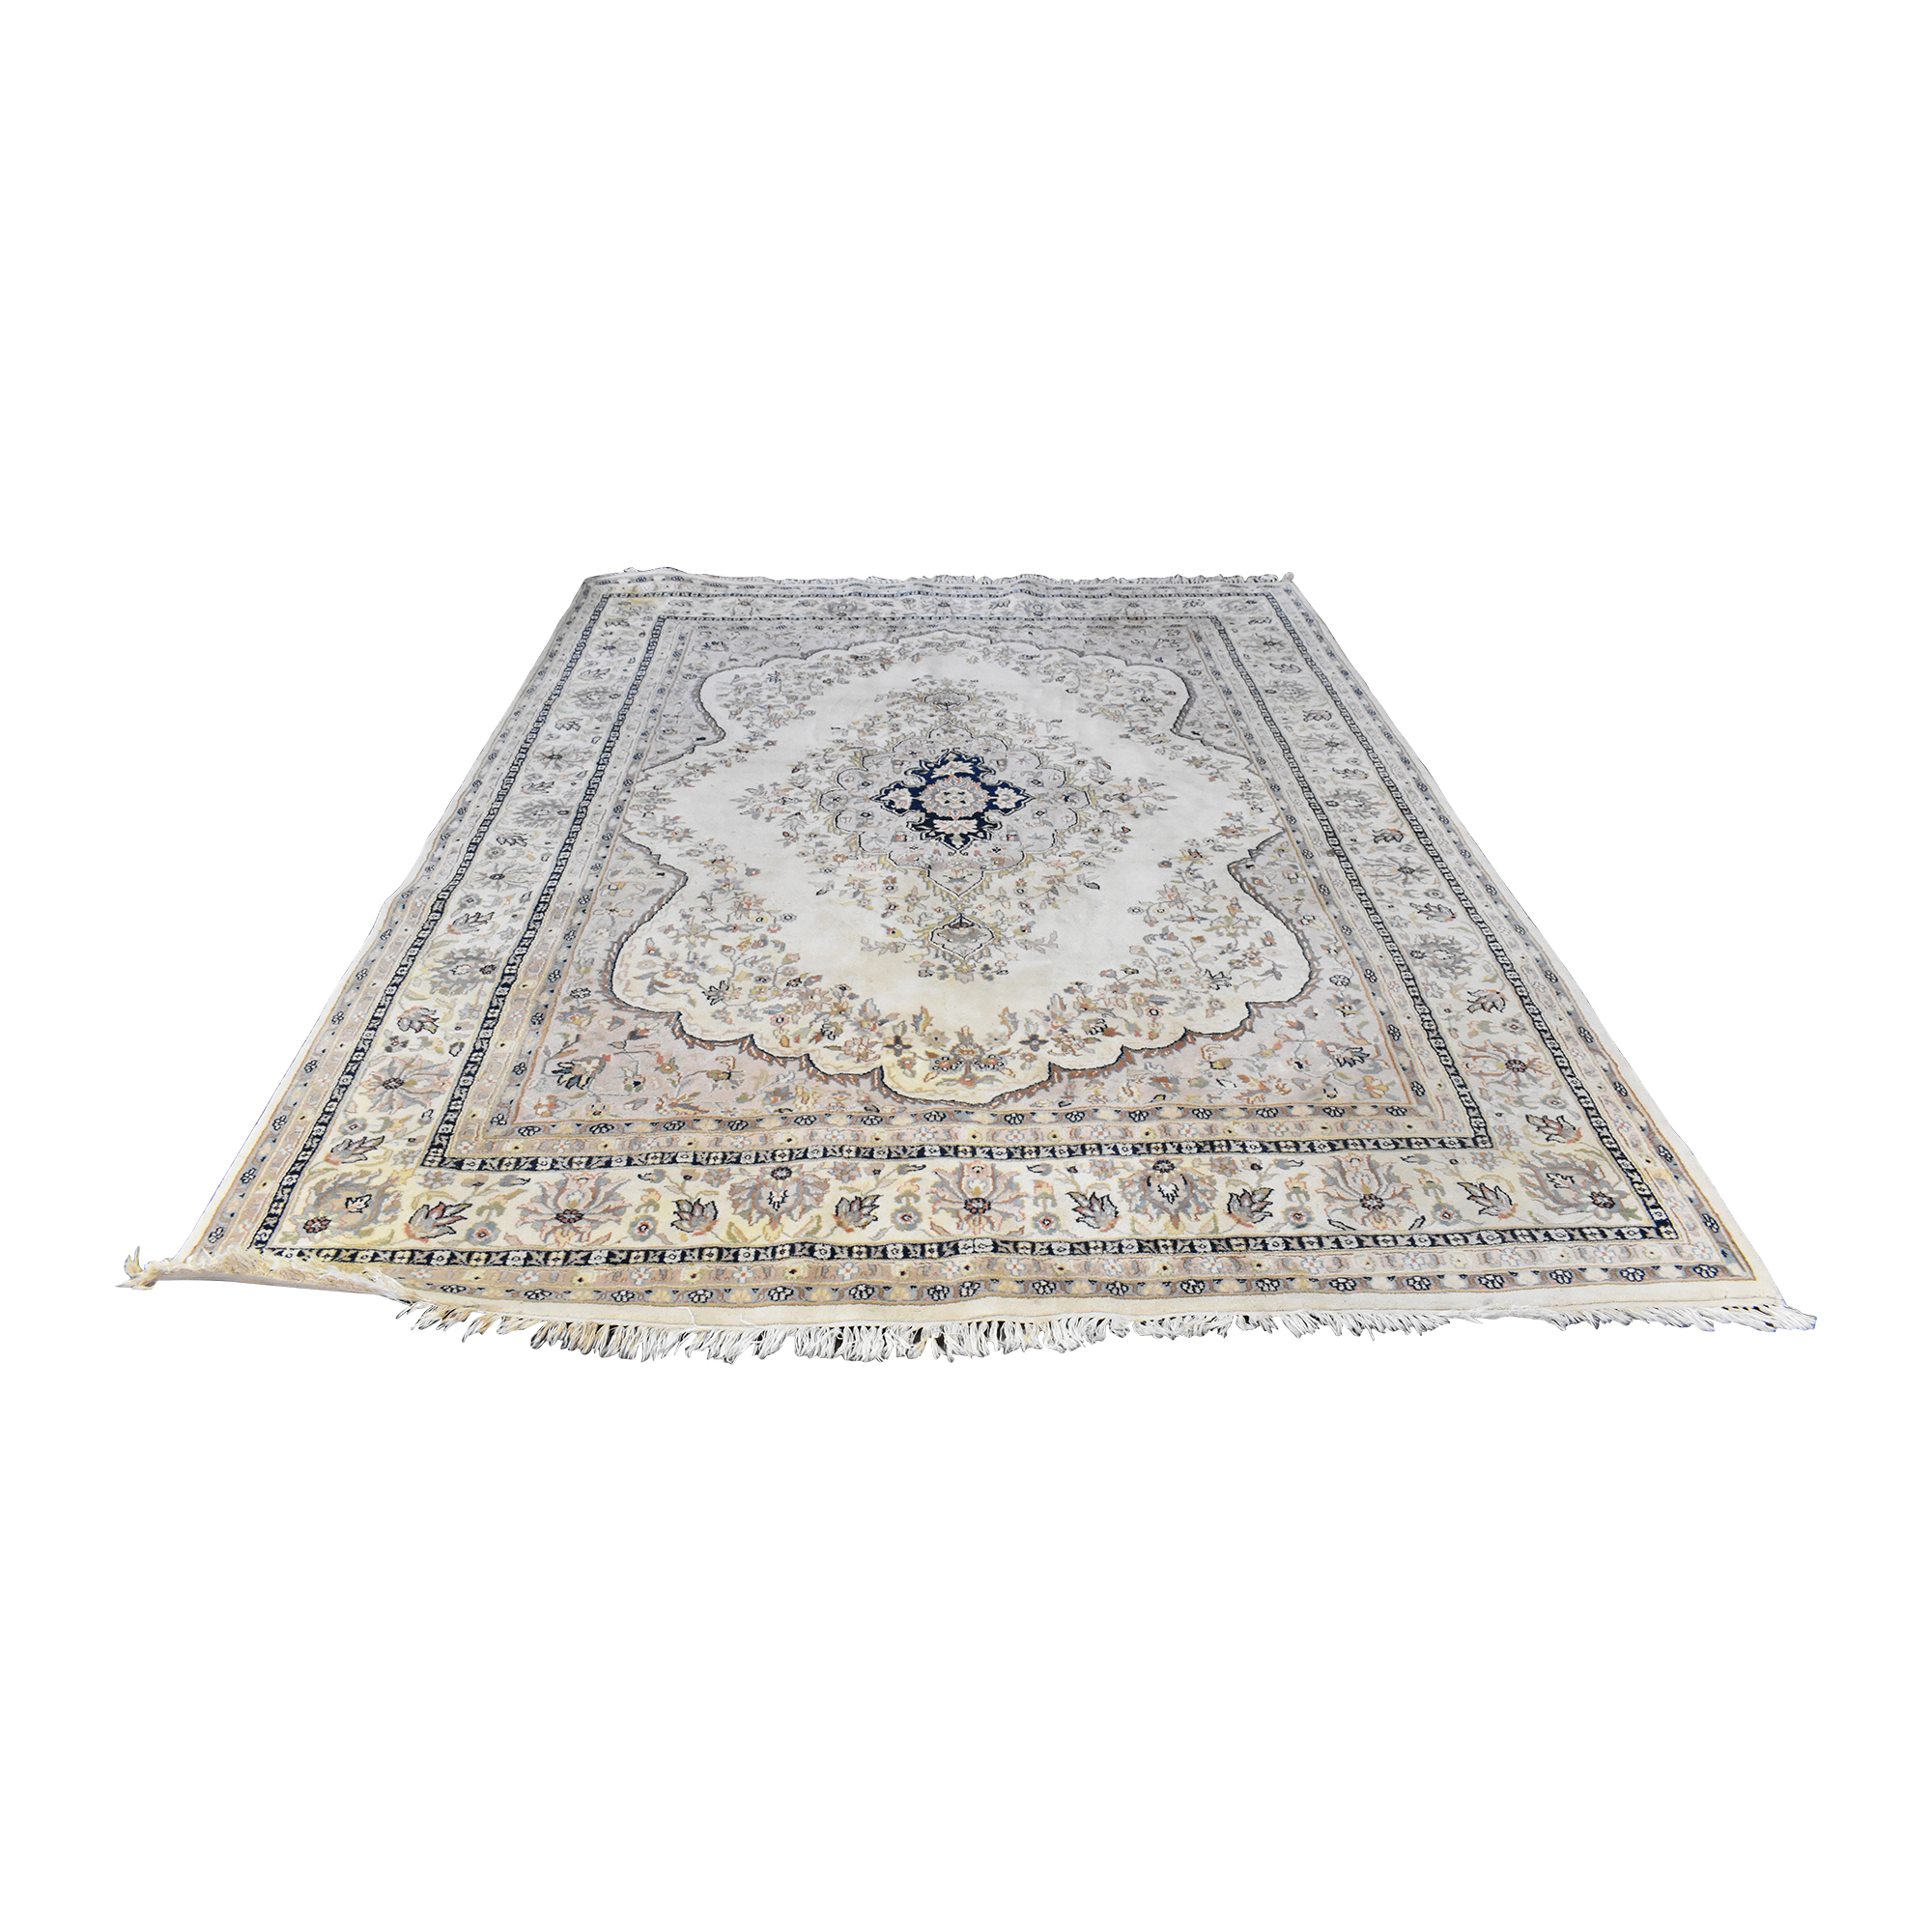 ABC Carpet & Home ABC Carpet & Home Decorative Rug multi